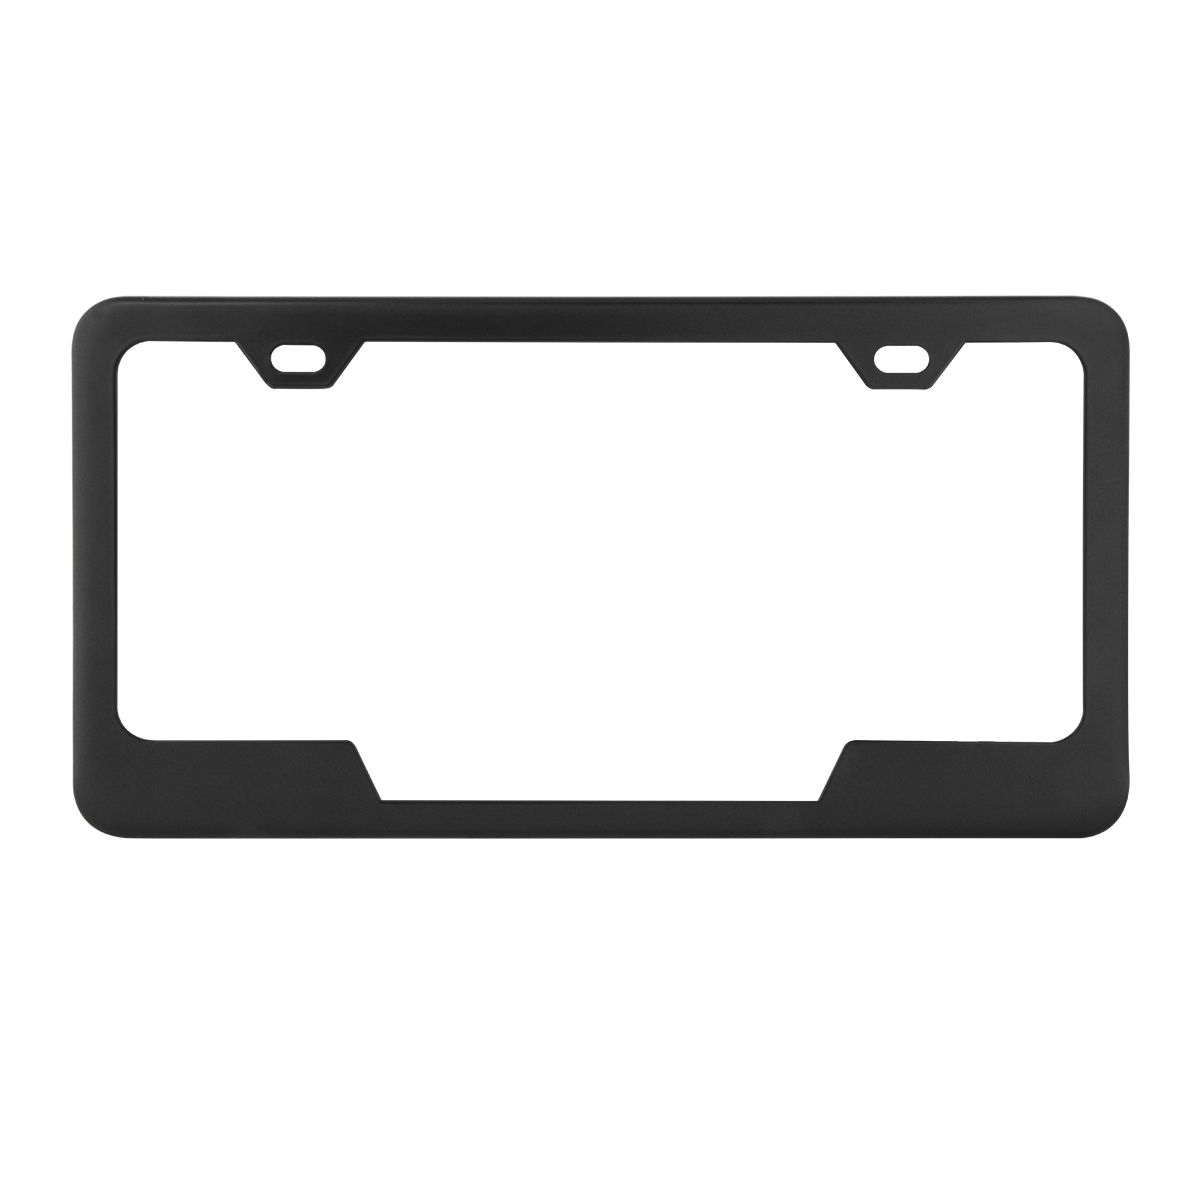 60406 Plain 2-Hole License Plate Frames with Center Cut